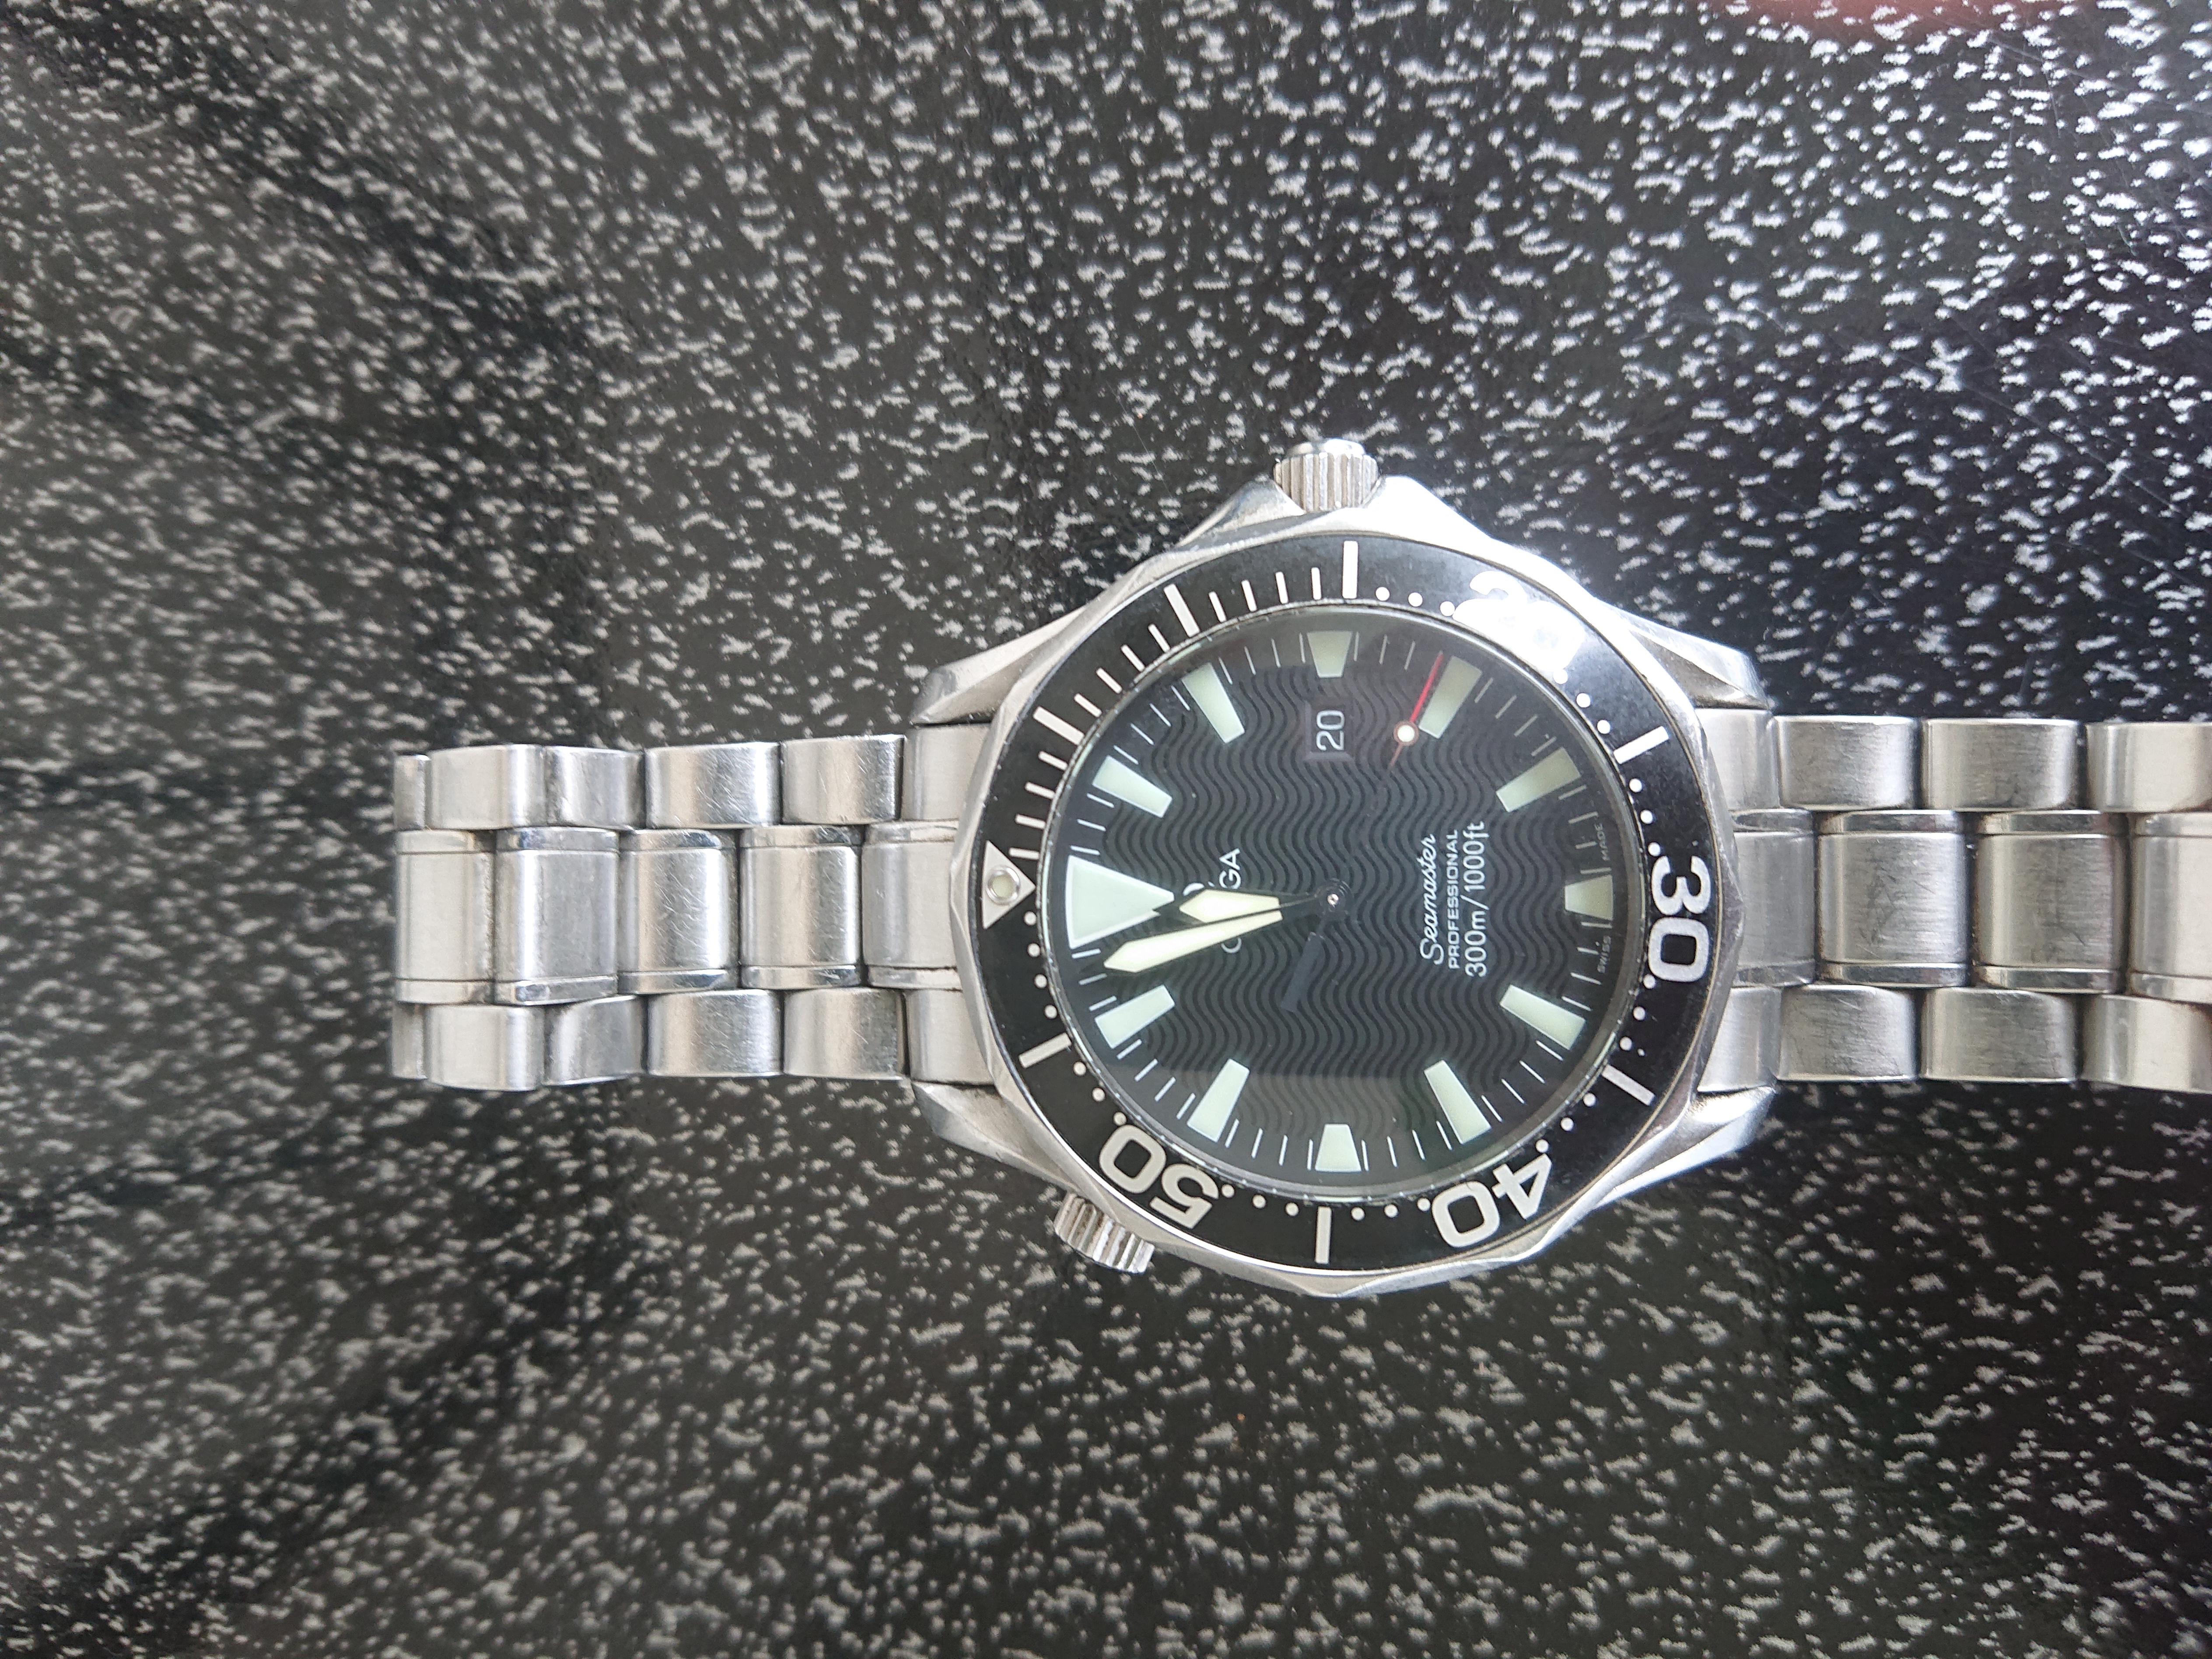 Omega seamaster 300m professional 2264.50  photo